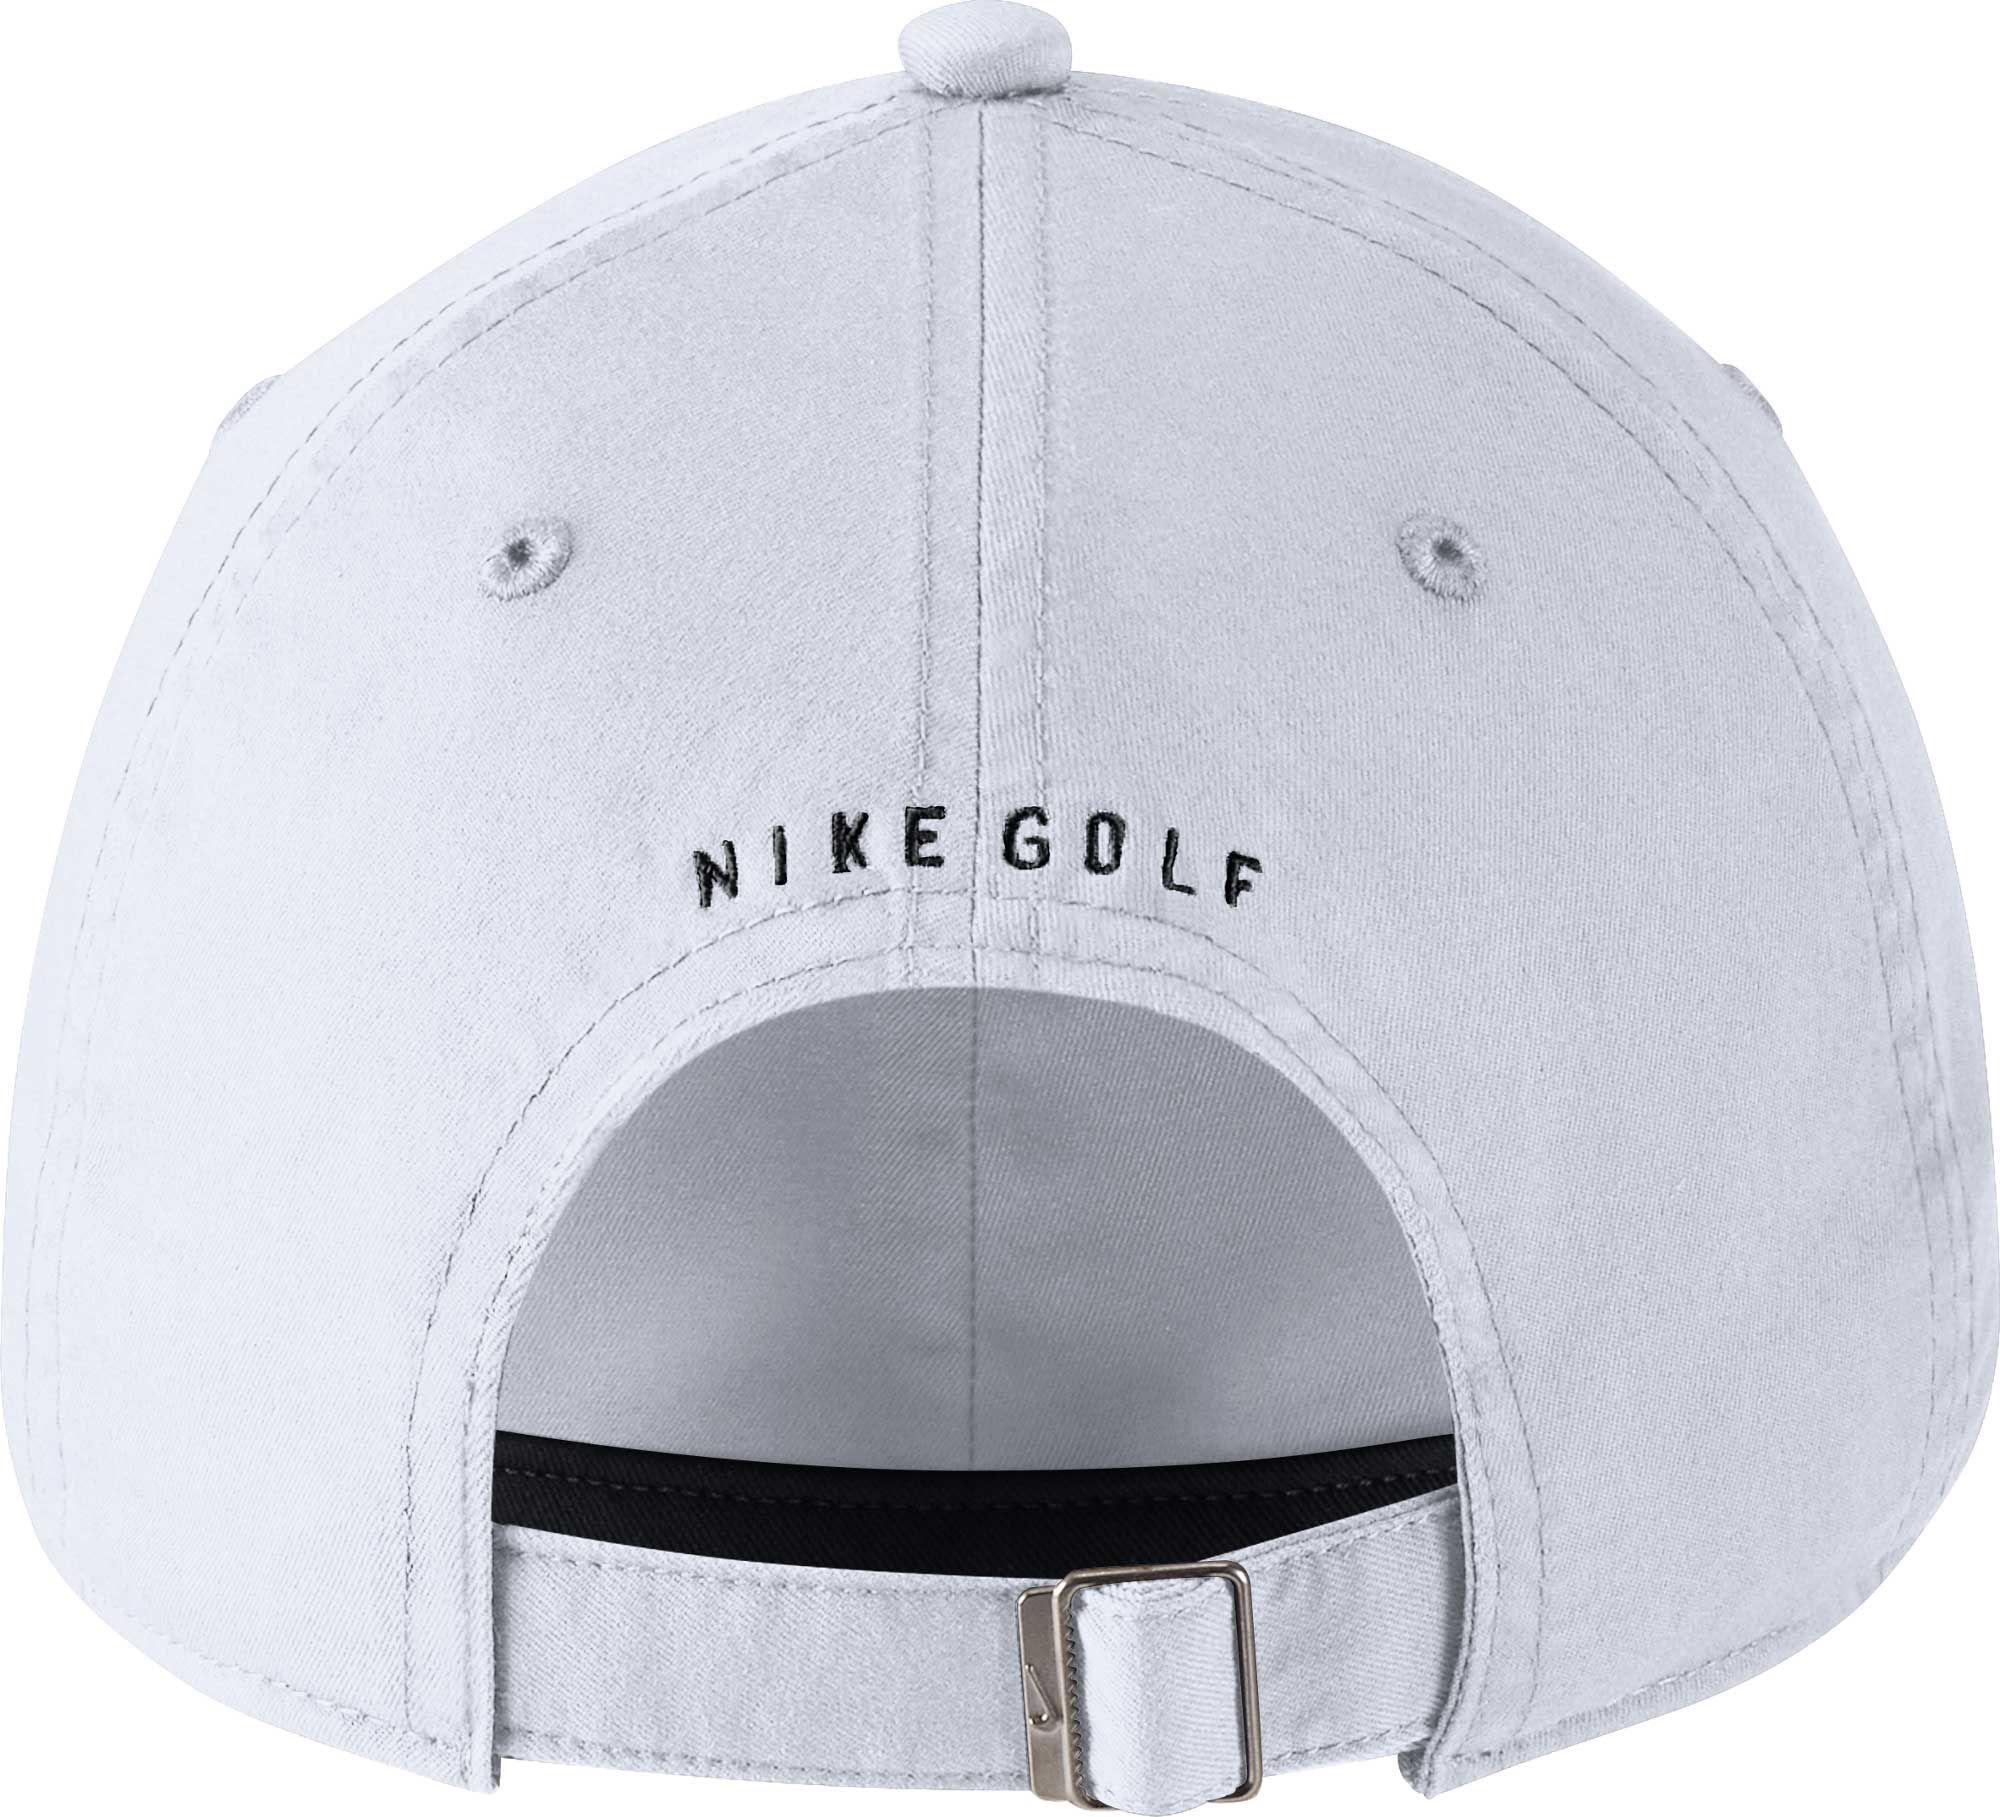 Lyst - Nike Heritage86 Golf Hat in White for Men d1a6488a705